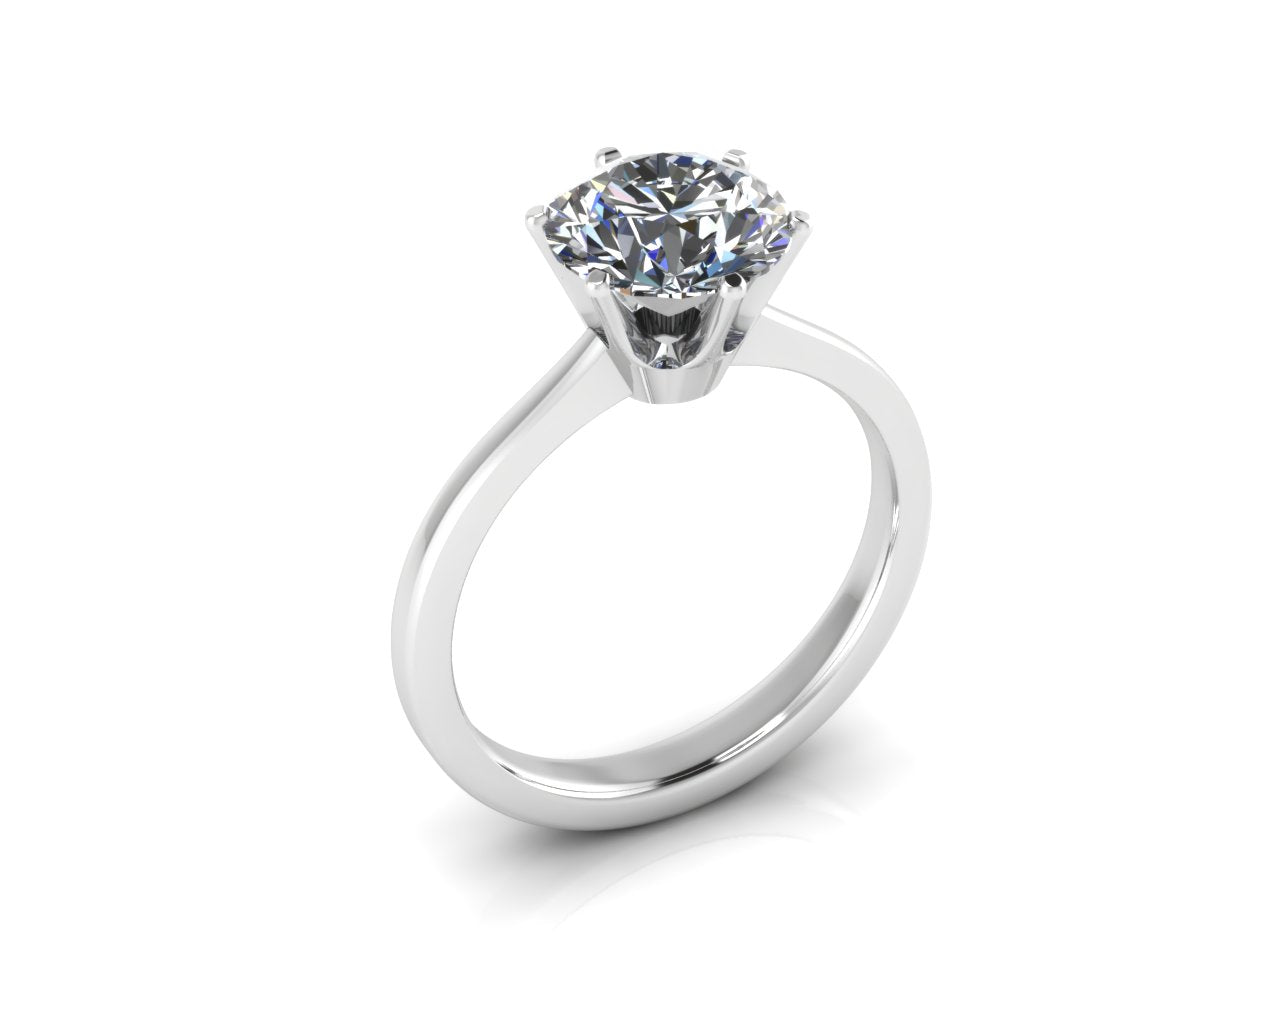 18ct White Gold Six-Claw Brilliant Cut Diamond Ring - Andrew Scott